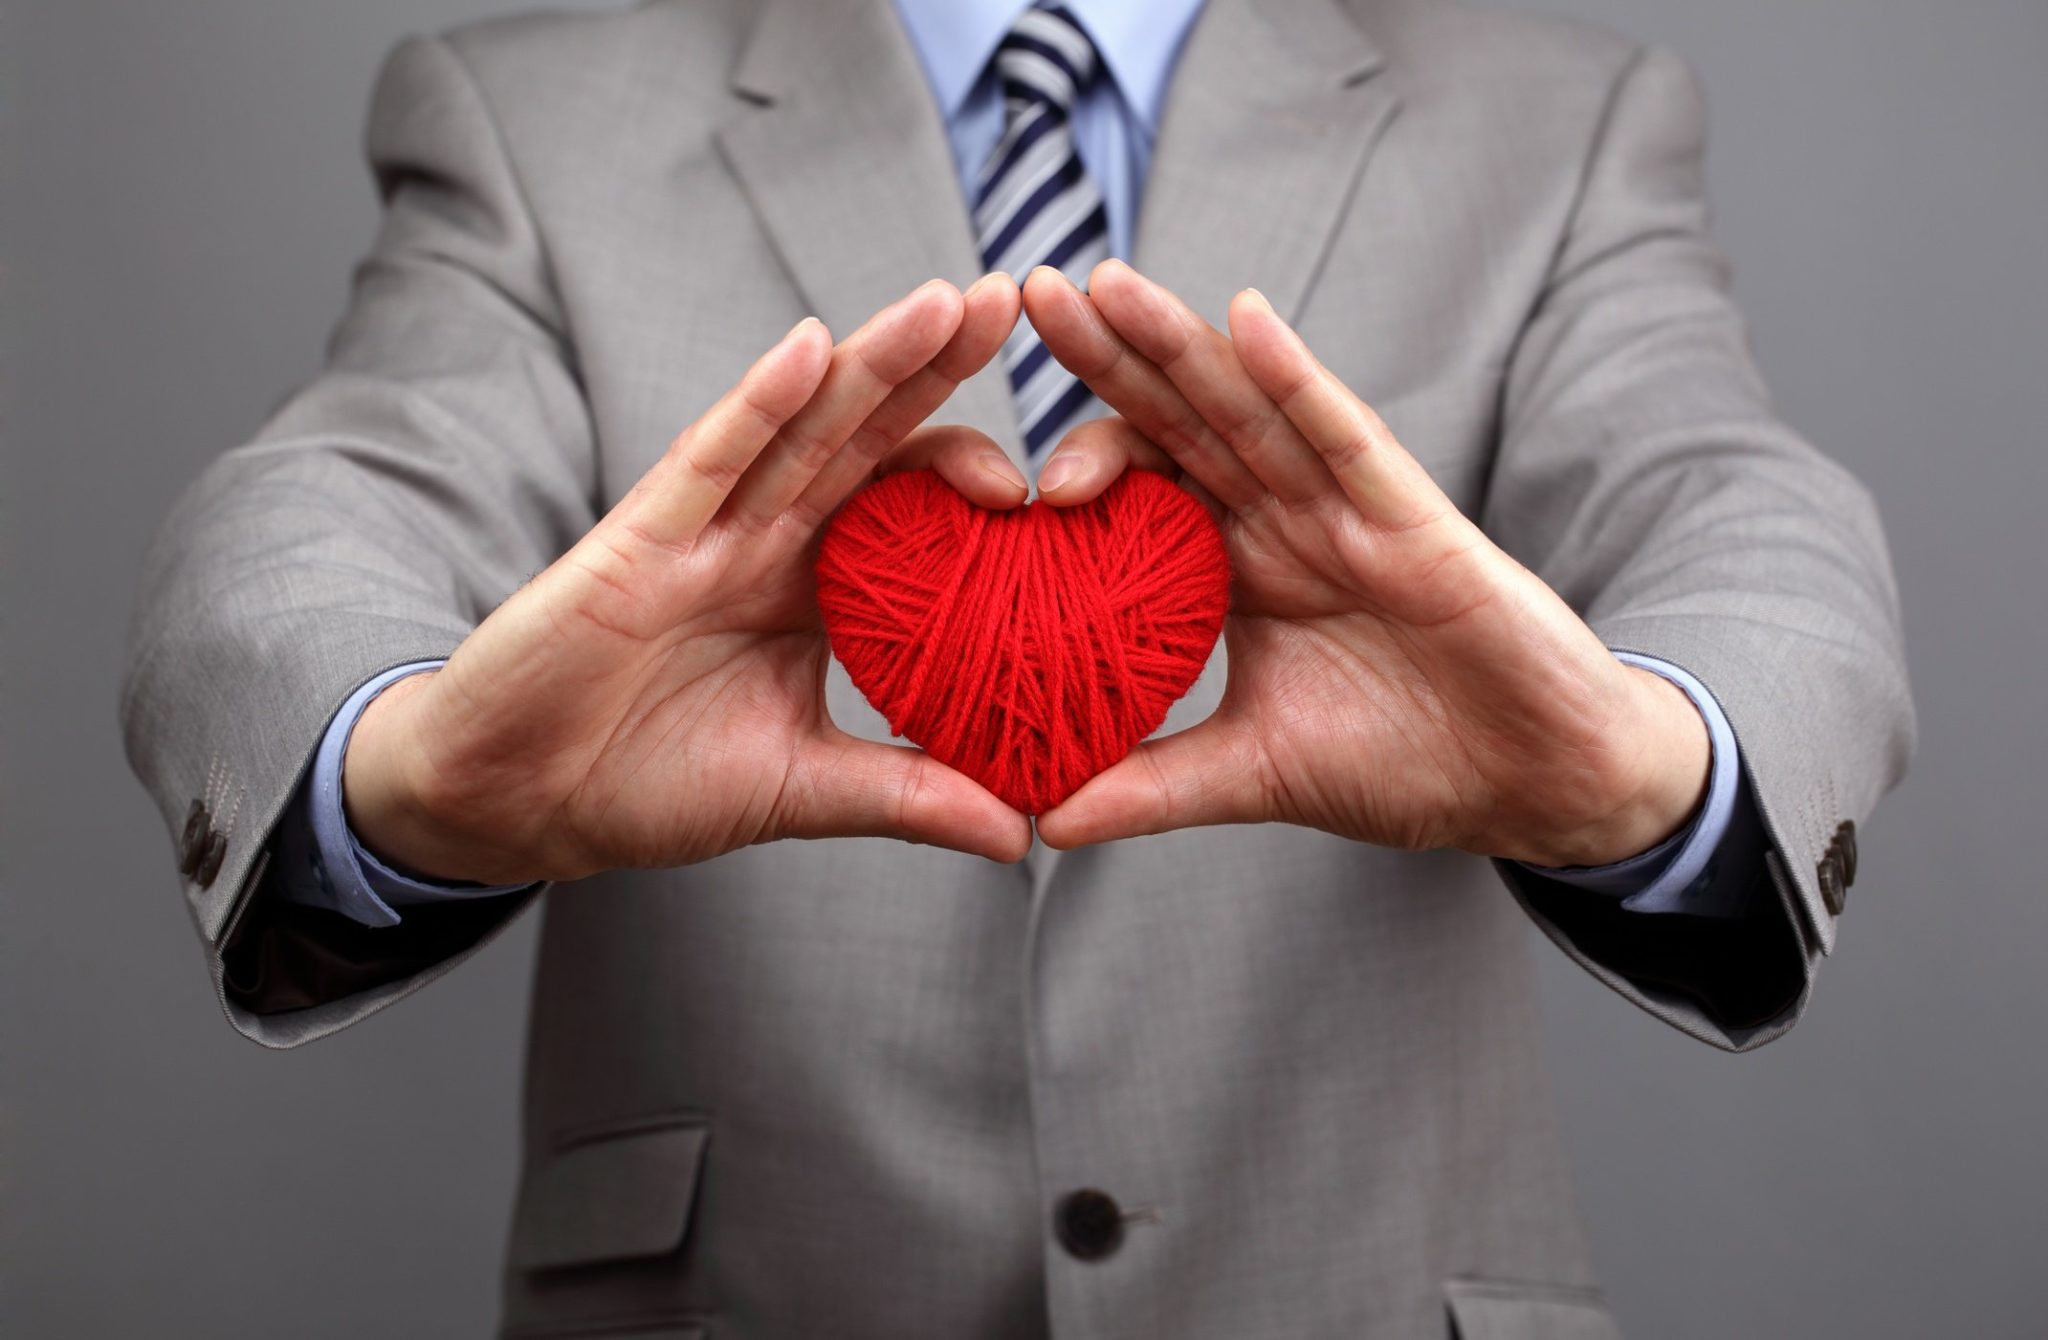 Man holding ball of yarn shaped as a heart